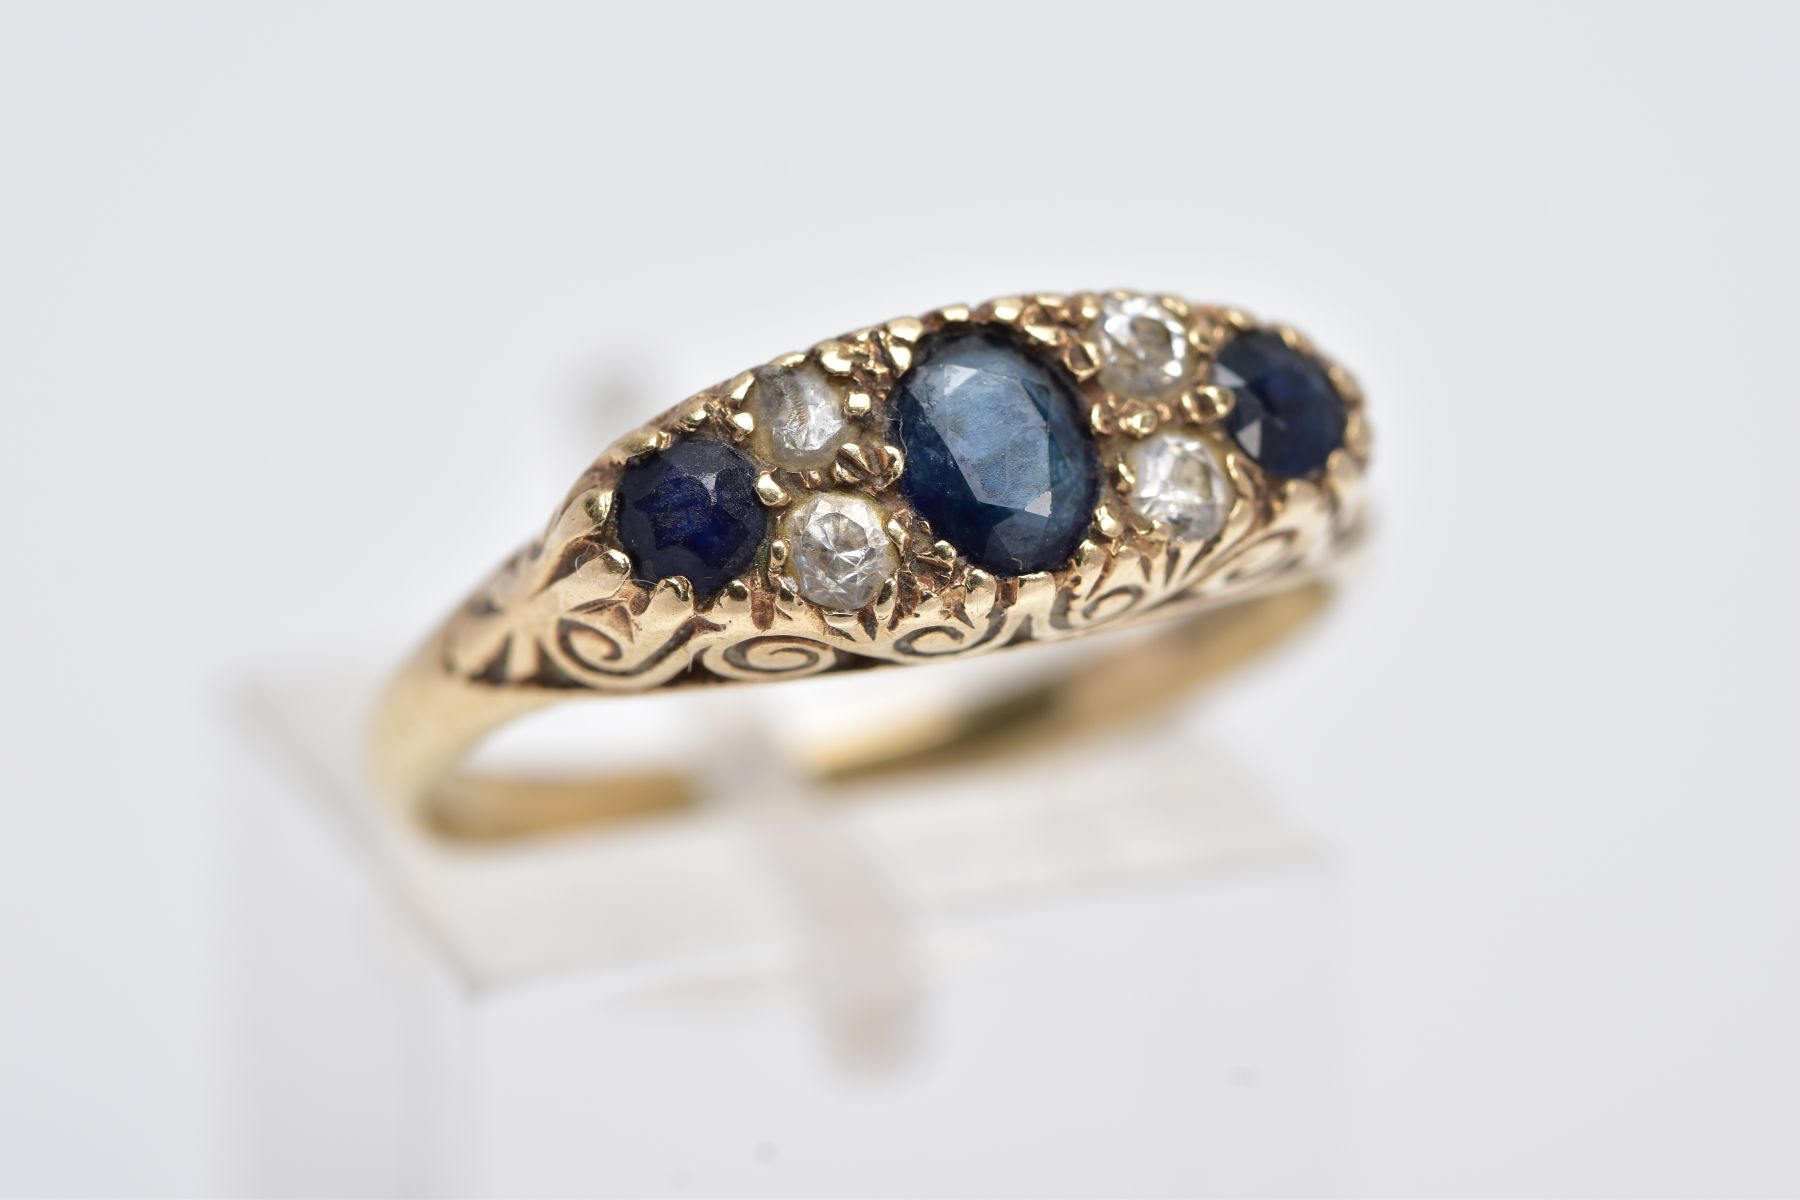 A 9CT GOLD SAPPPHIRE AND PASTE RING, centring on an oval cut blue sapphire flanked with colourless - Image 4 of 4